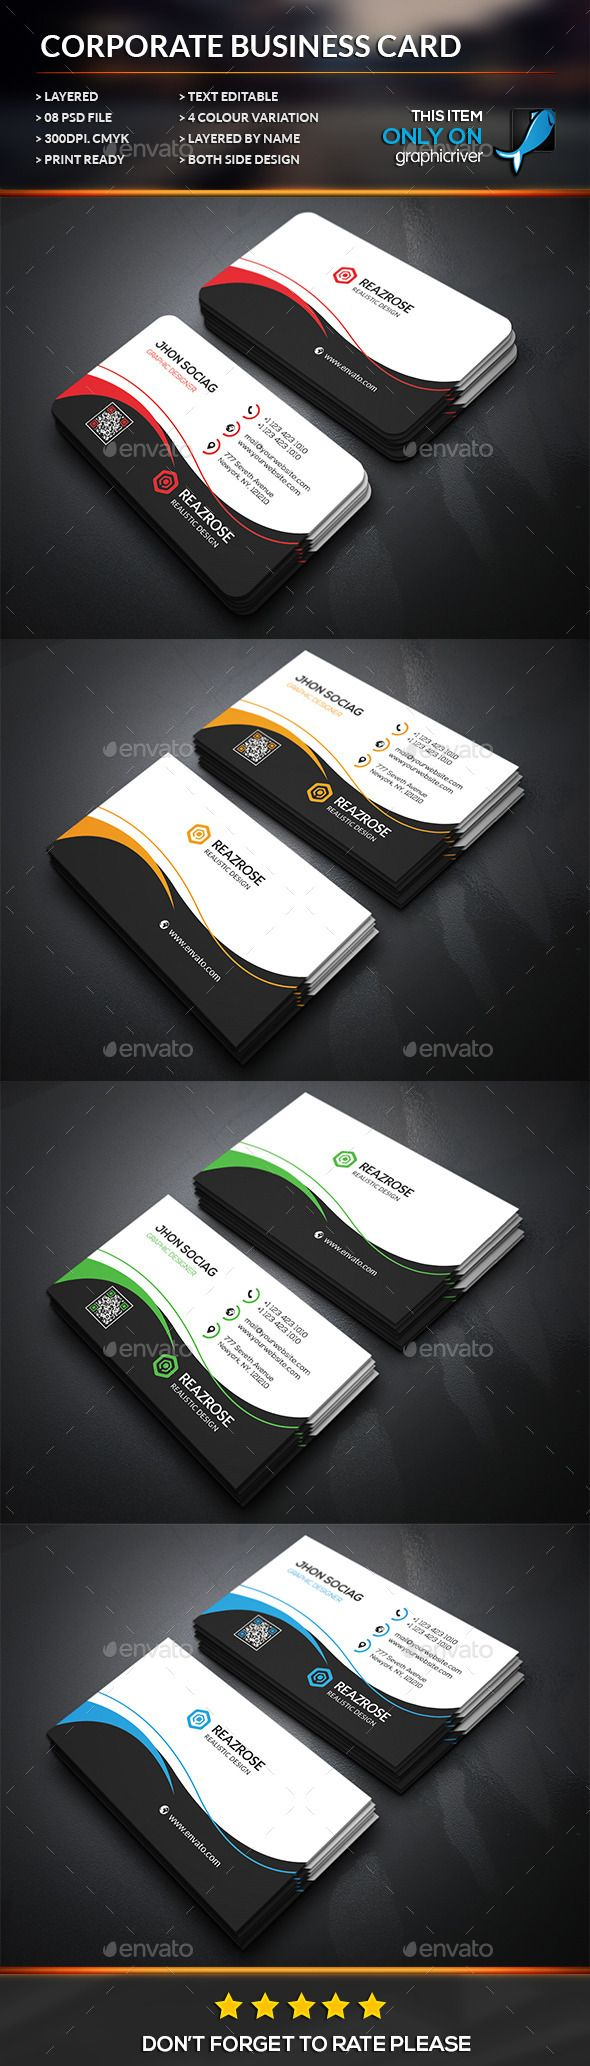 Half Round Business Card Corporate Business Cards Business - Round business card template